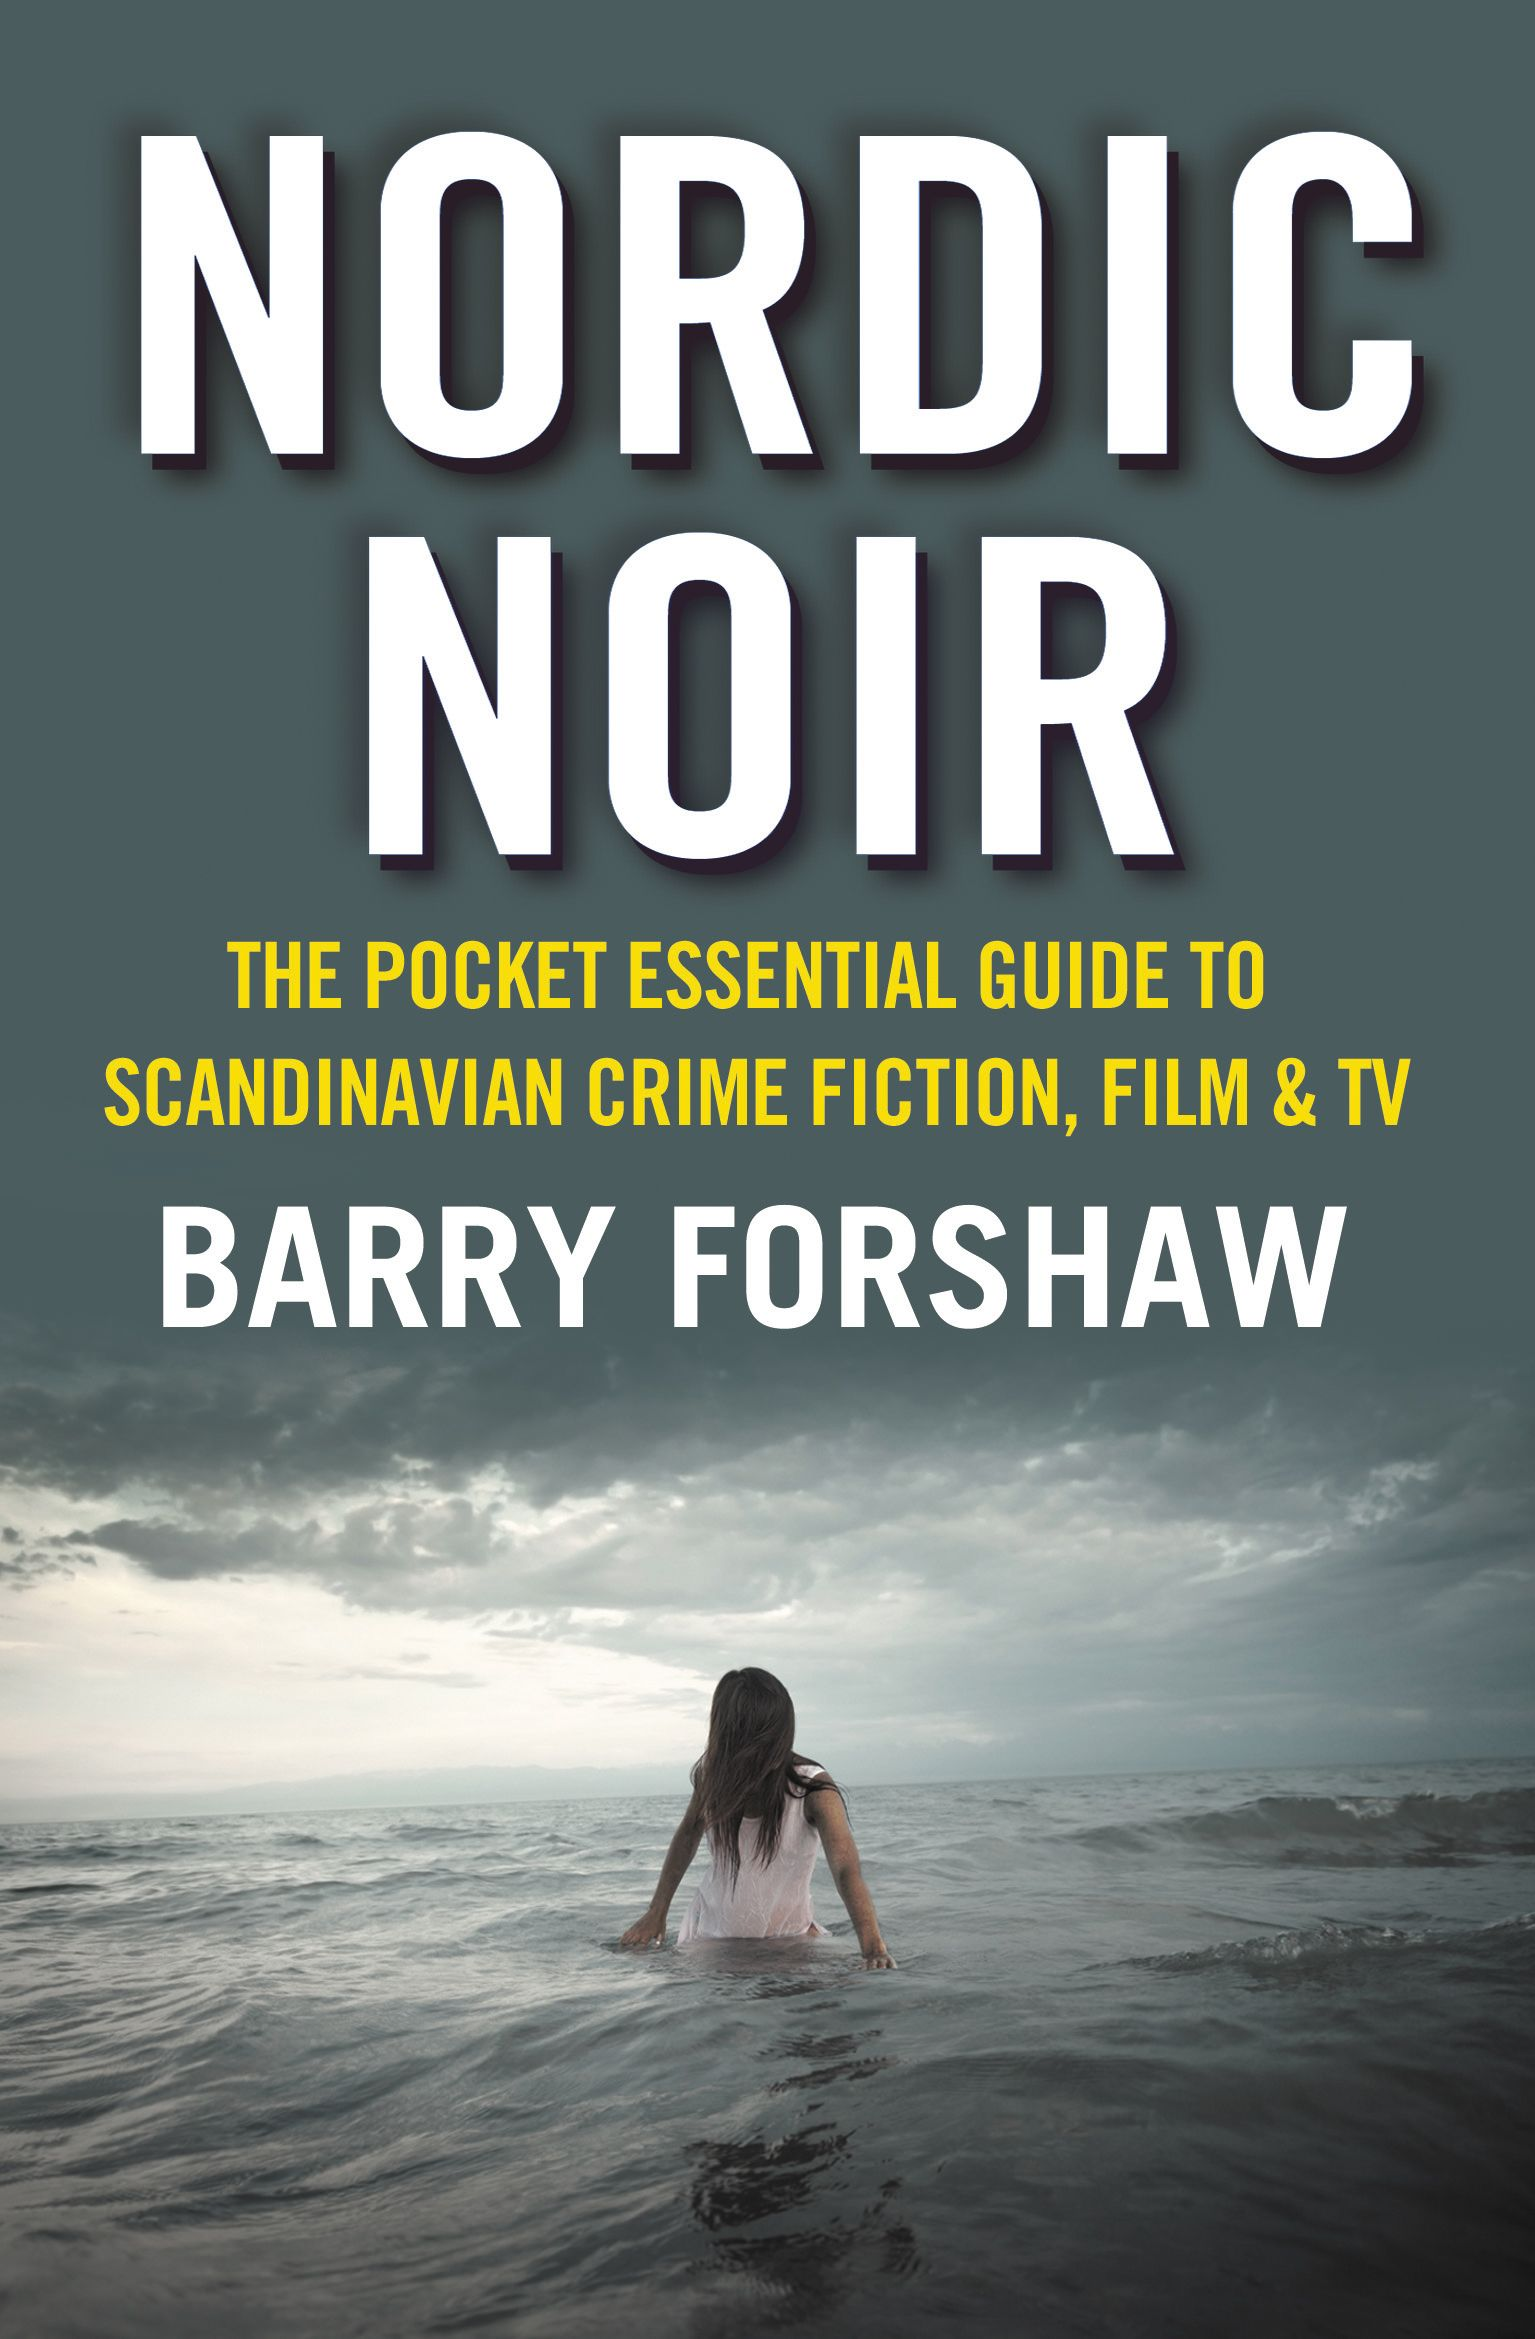 Book Review Nordic Noir By Barry Forshaw Crime Fiction Fiction Film Scandinavian Books